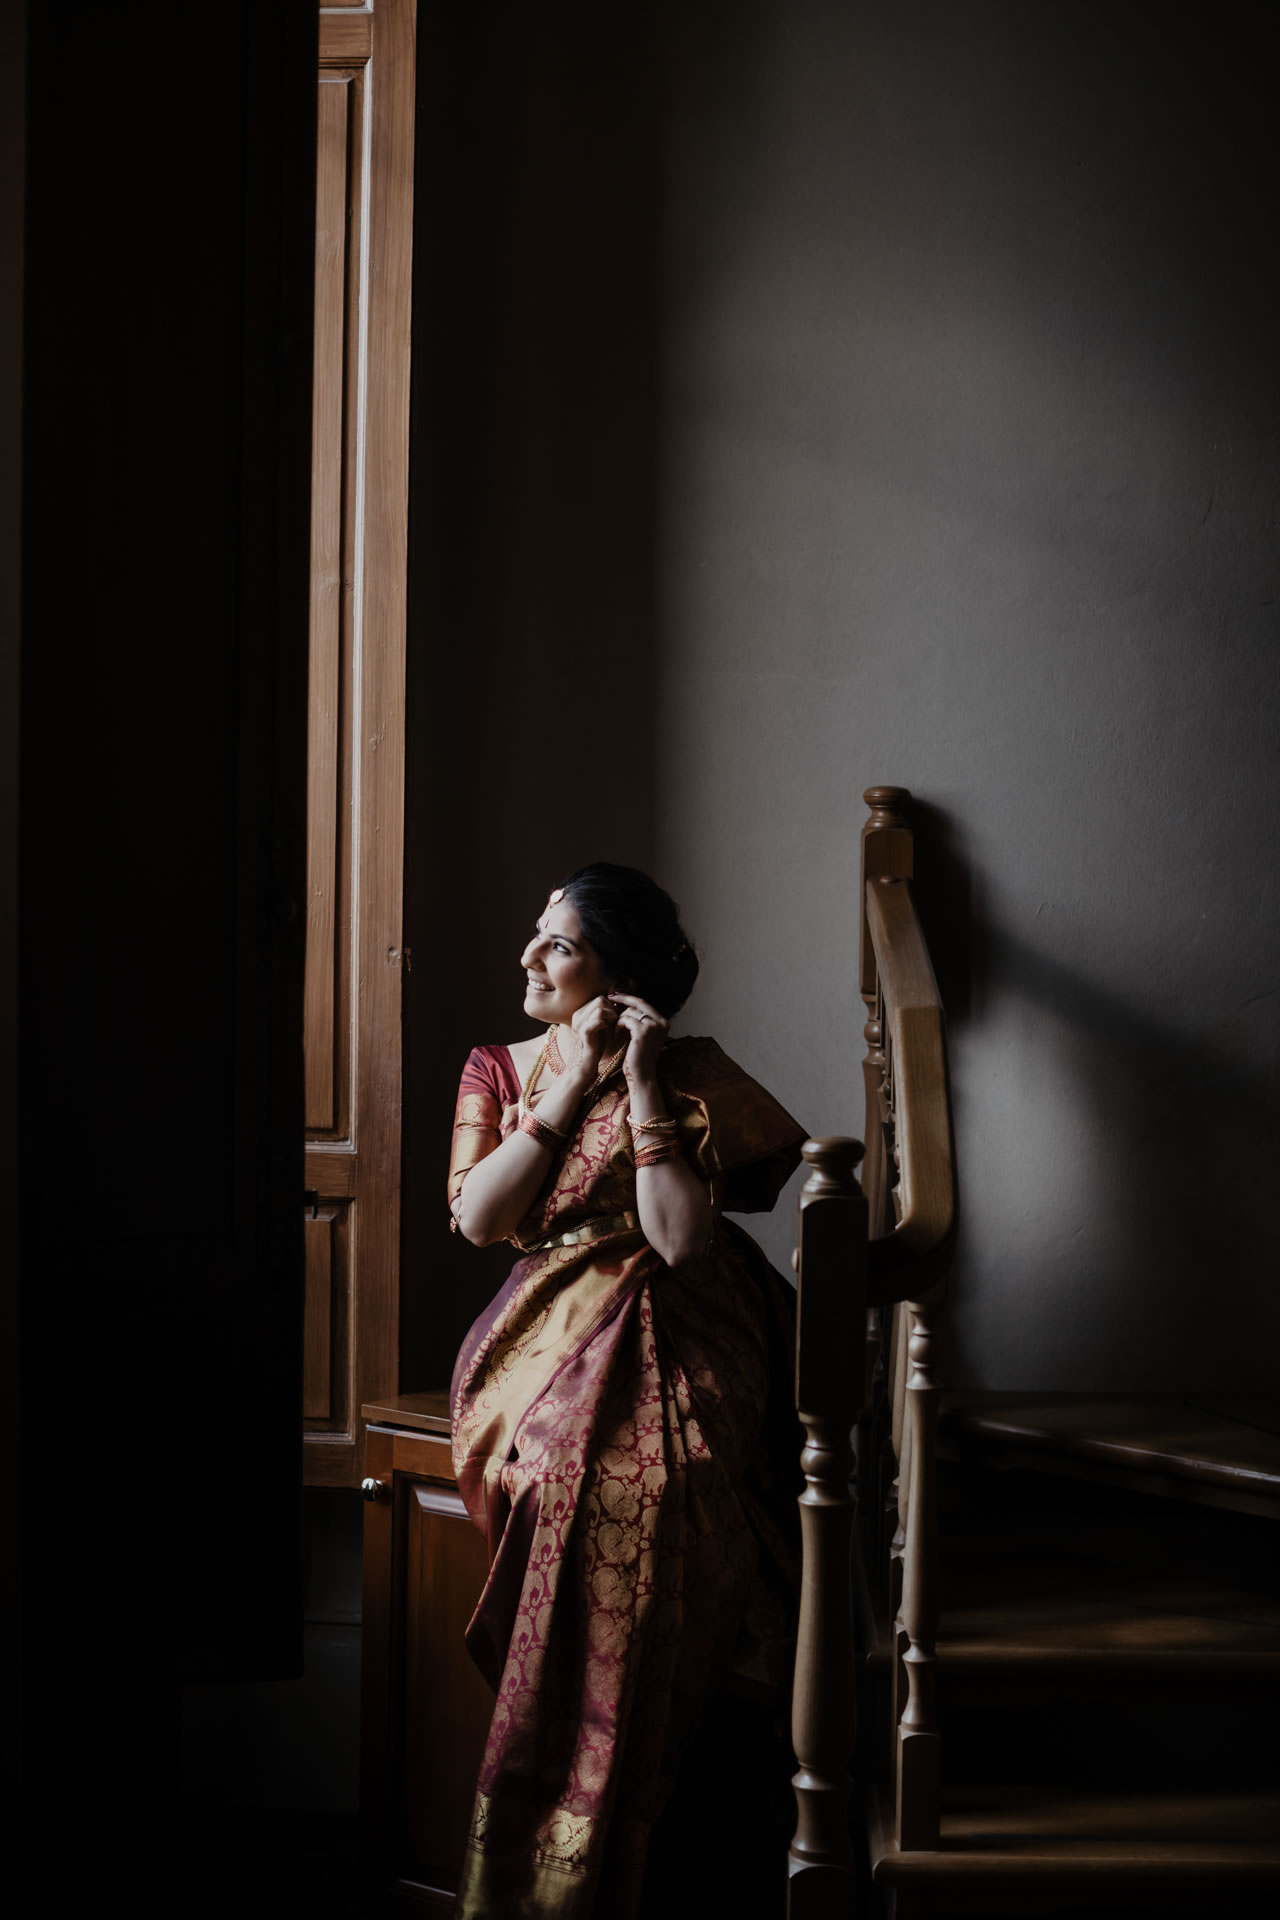 Indian wedding ceremony at Villa Pitiana :: Luxury wedding photography - 3